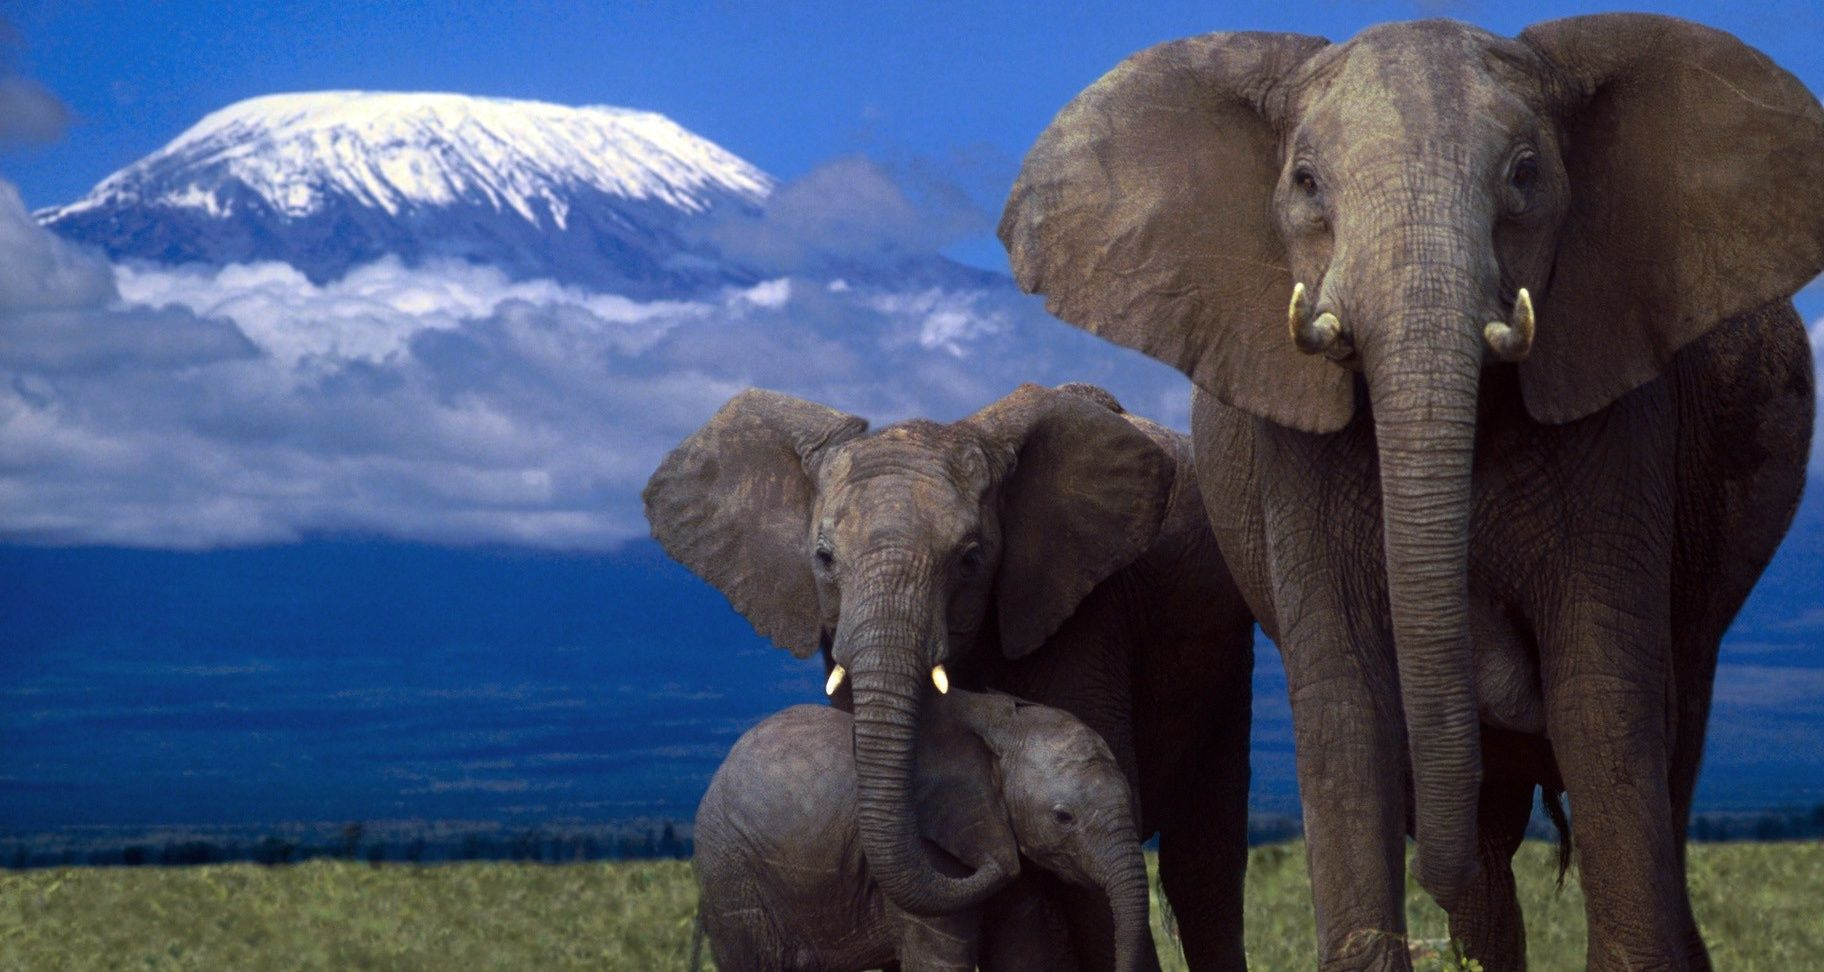 Baby Elephant Wallpaper Pictures en Animal Picture Society